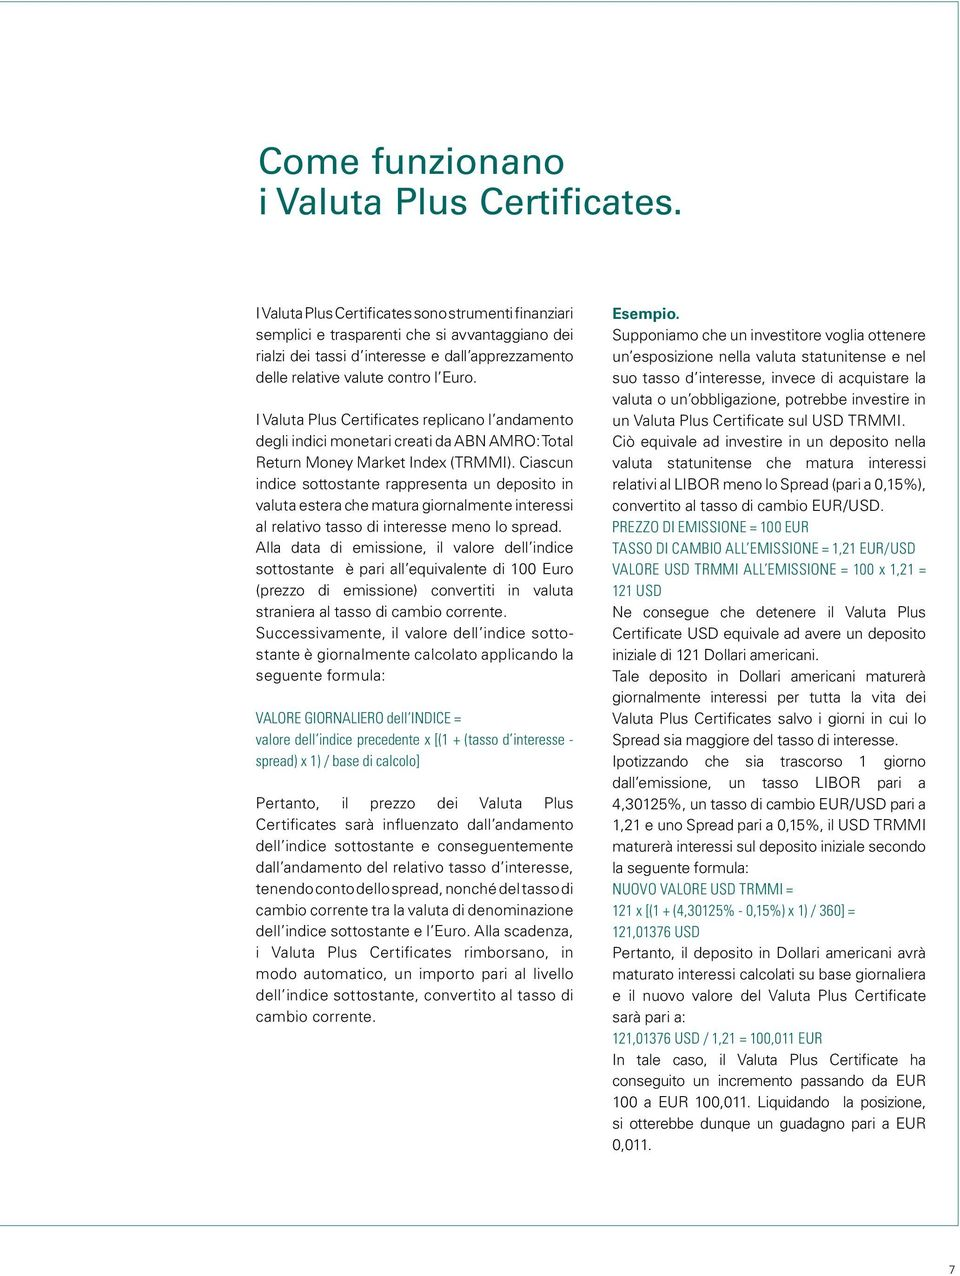 I Valuta Plus Certificates replicano l andamento degli indici monetari creati da ABN AMRO: Total Return Money Market (TRMMI).